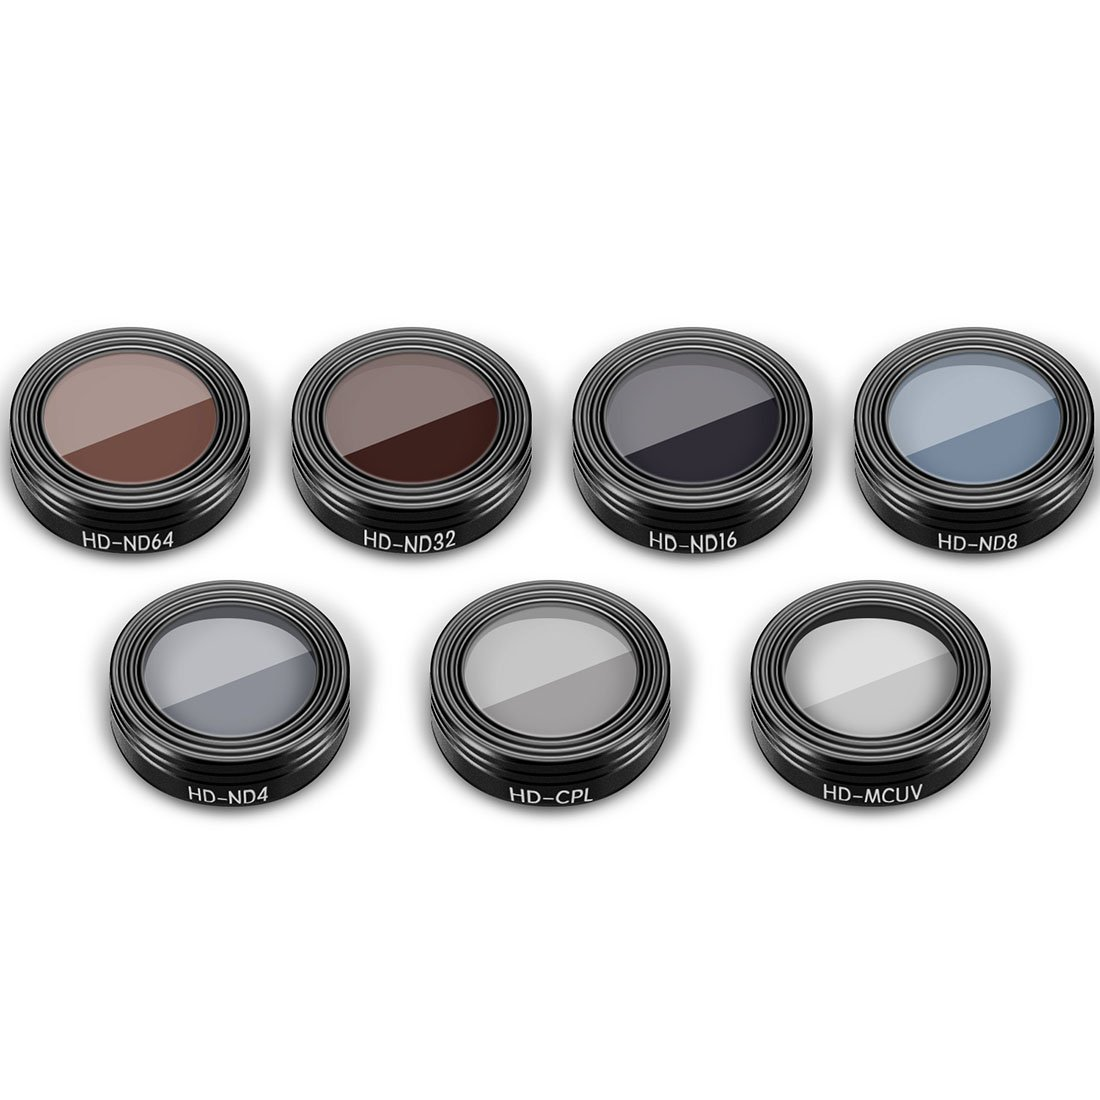 RuiyiF Filters Set for DJI Mavic Air RC Quadcopter, 7PCS ND64 ND32 ND16 ND8 ND4 CPL UV Mavic Air Accessories by RuiyiF